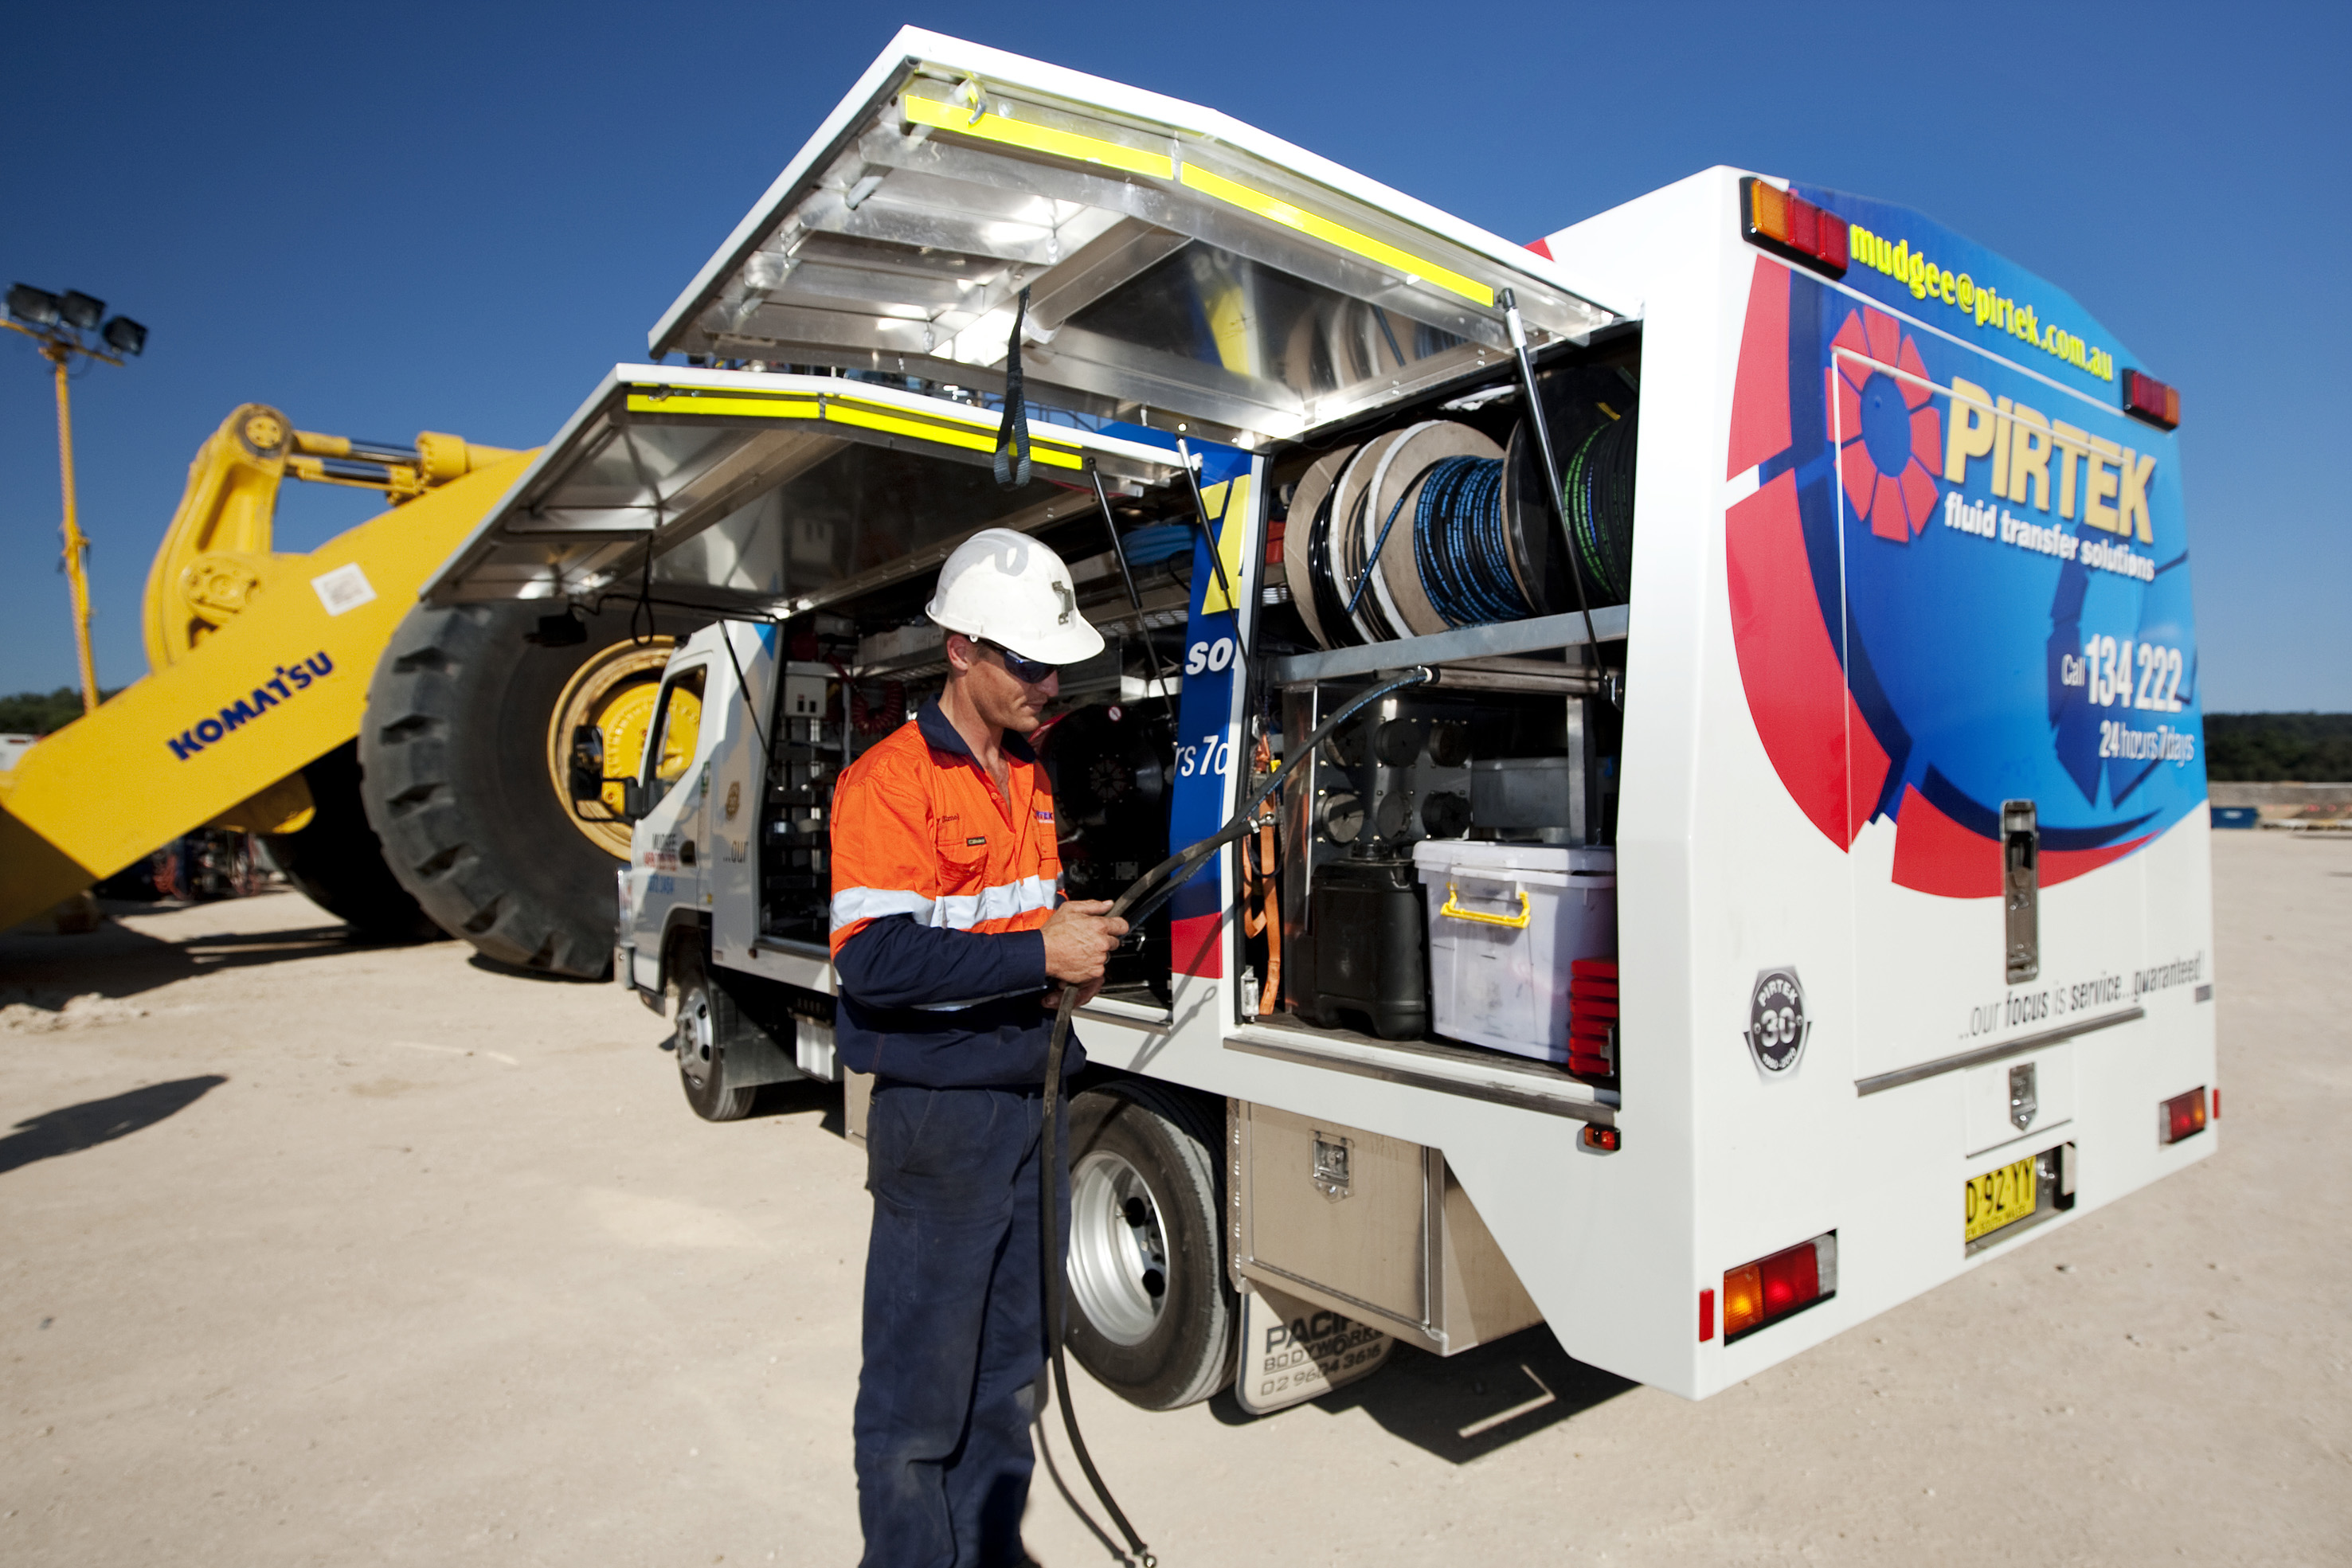 Pirtek Franchise Available - Bega